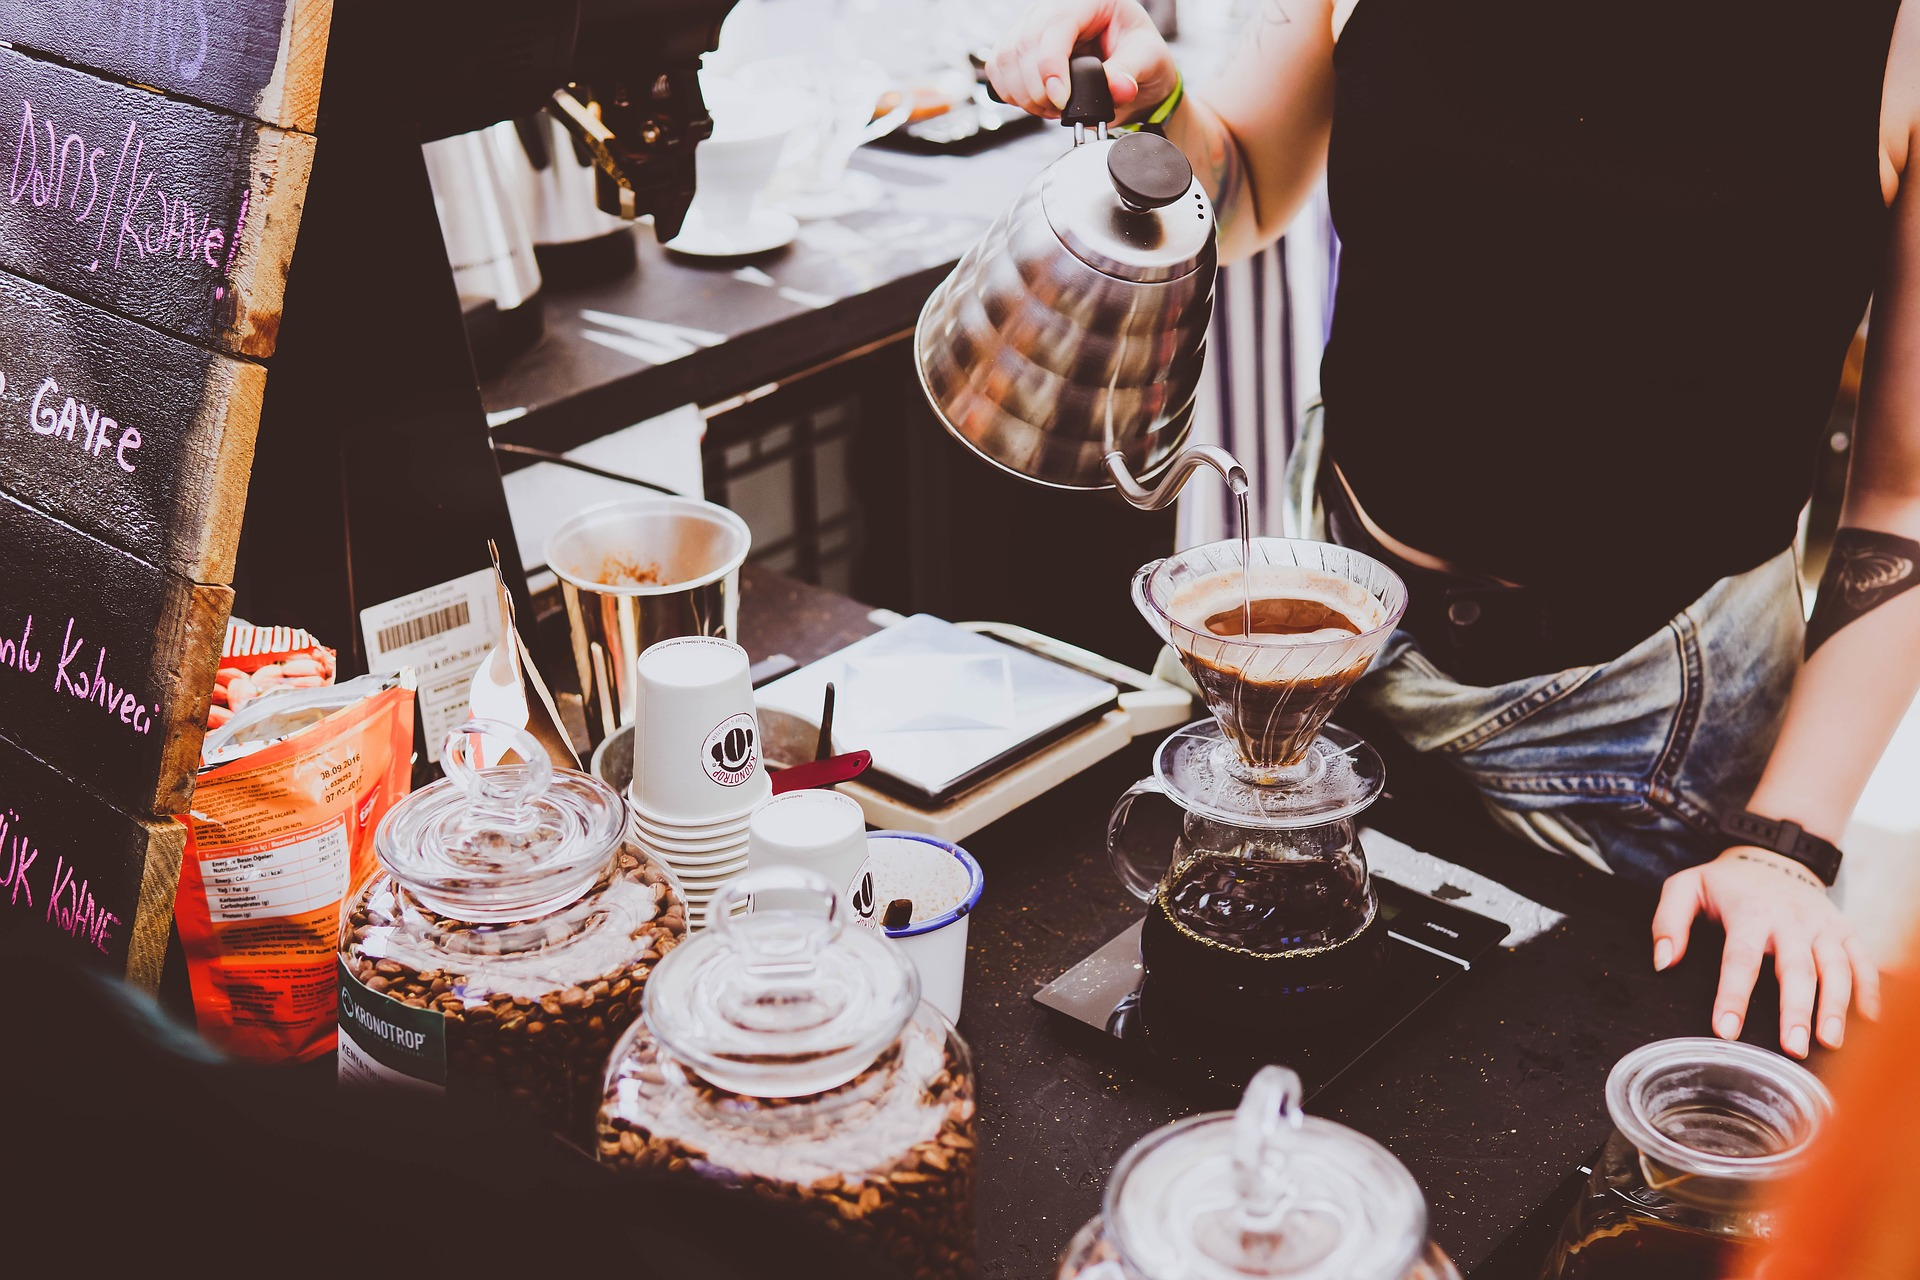 places to find good coffee in downtown sudbury area